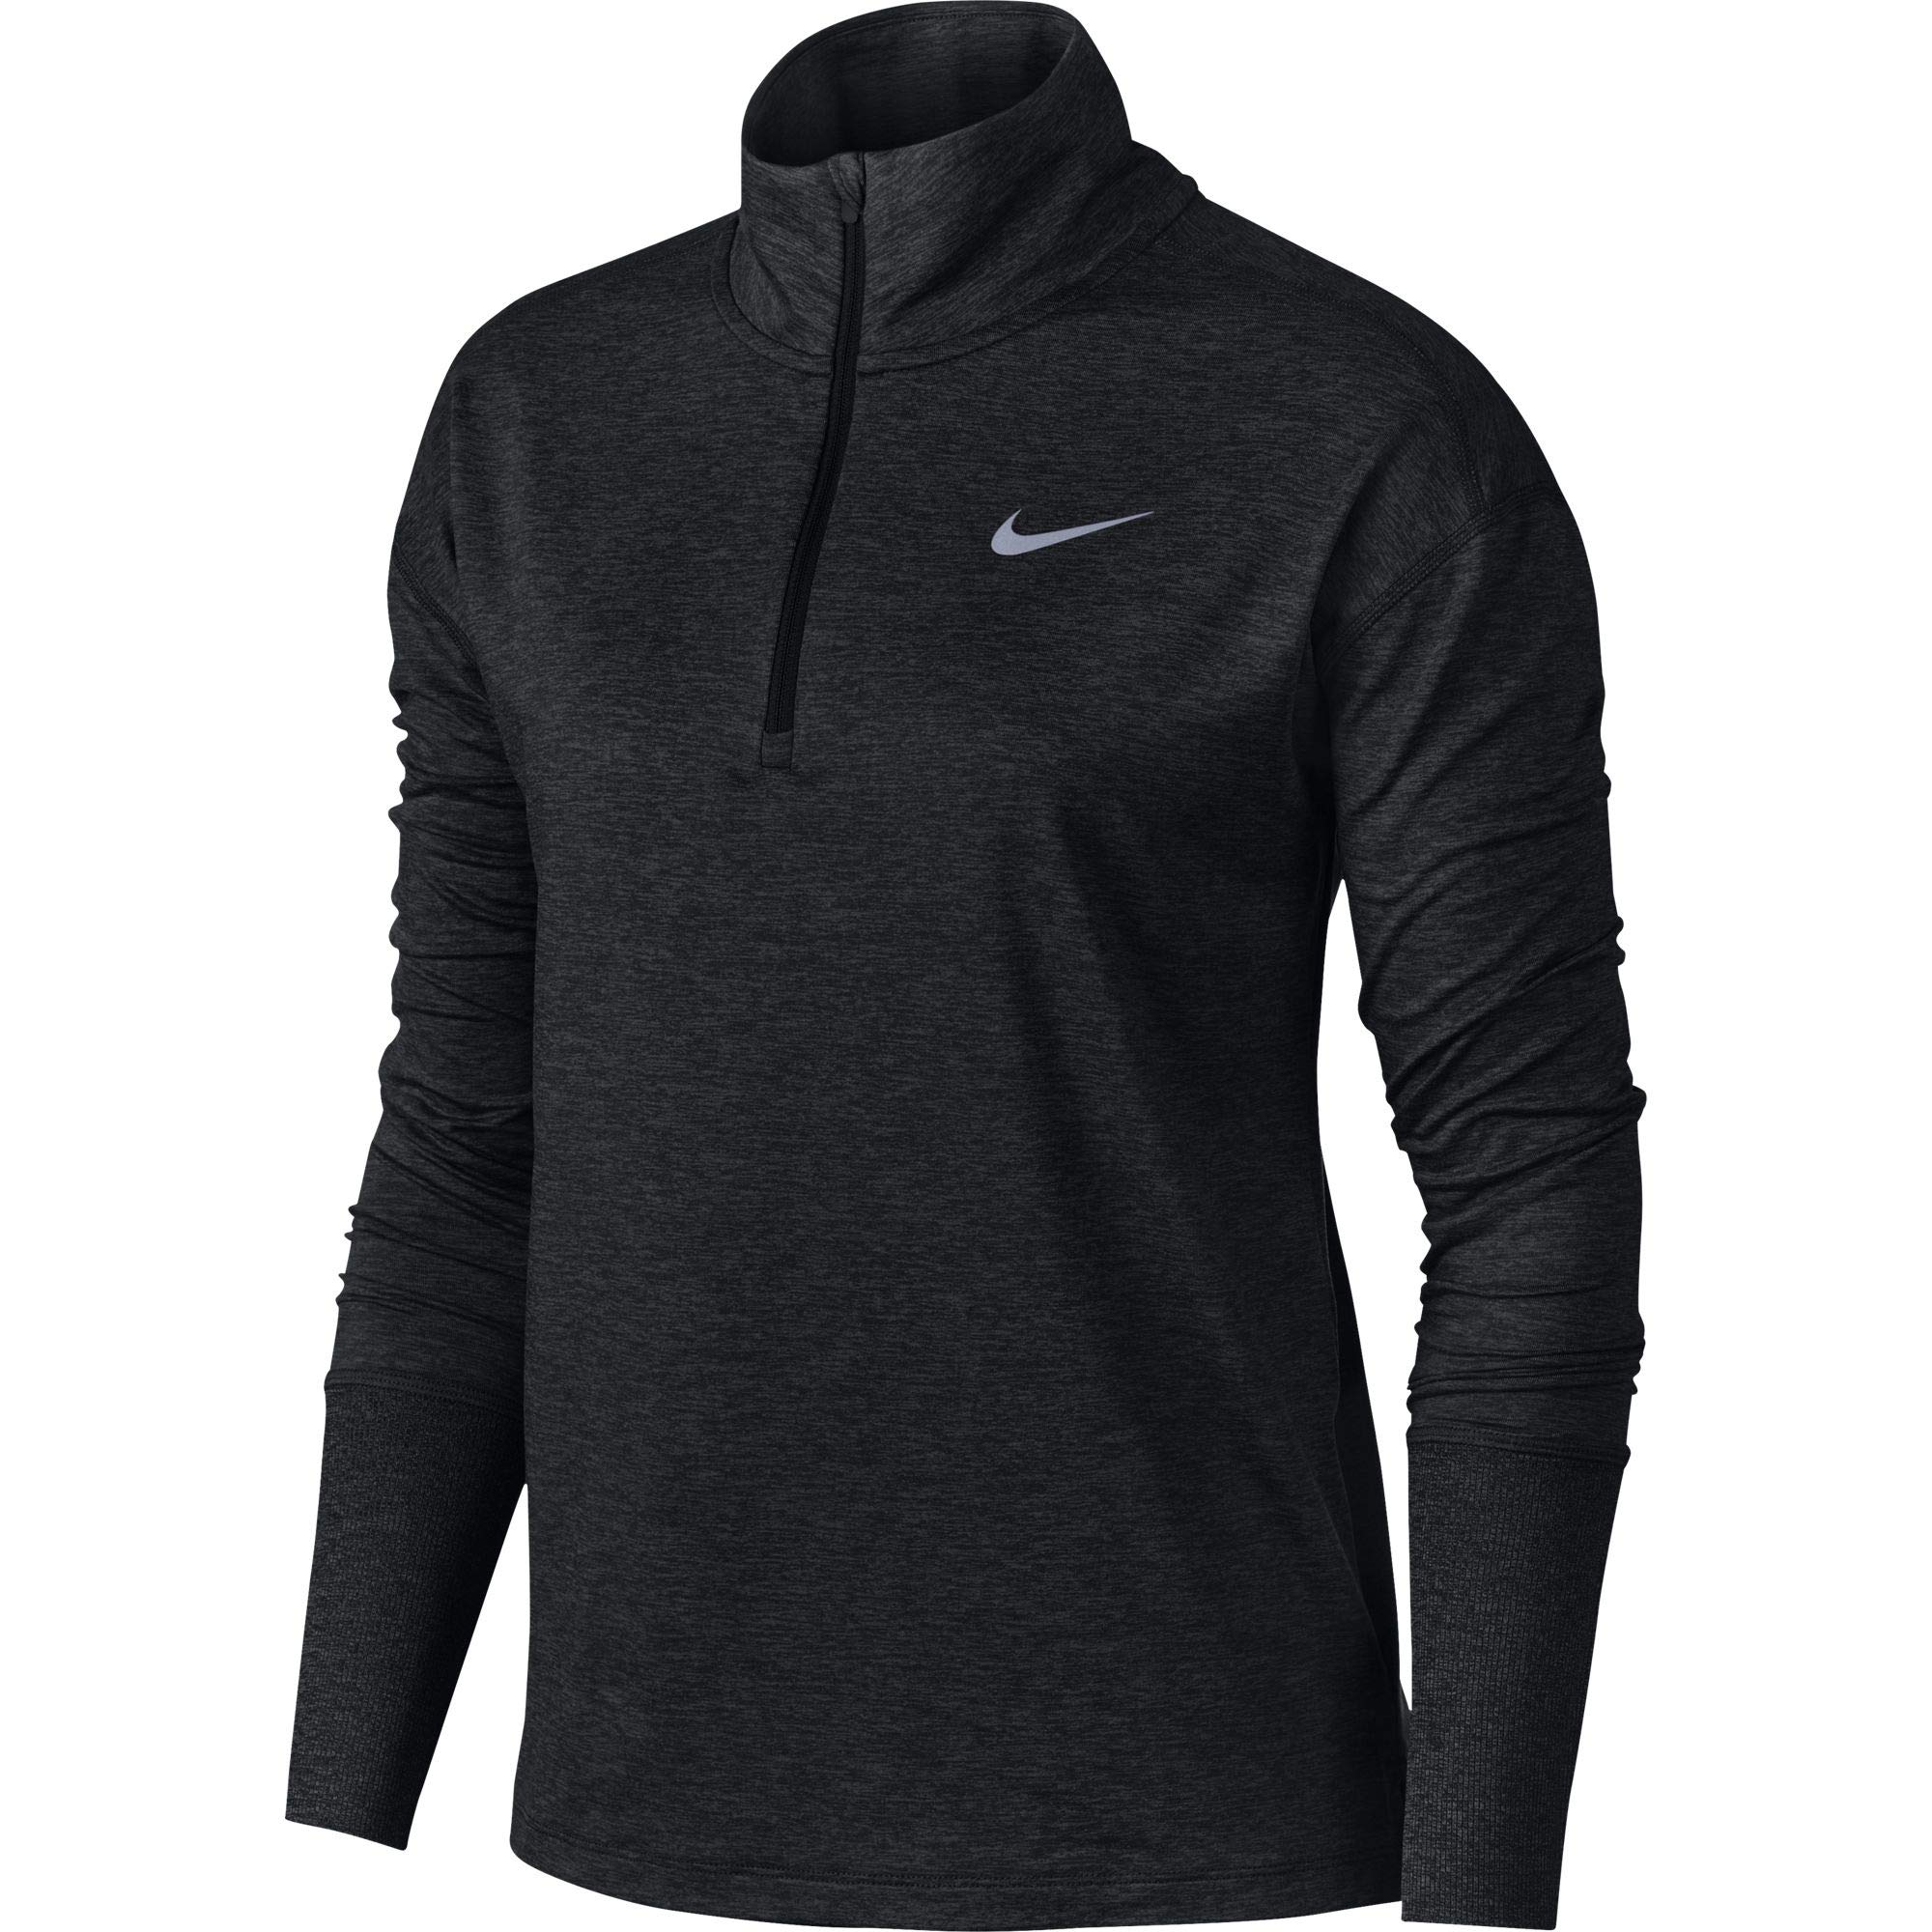 Nike Women's Element 1/2 Zip Running Top Black/Heather/Reflective Silver Size Small by Nike (Image #1)